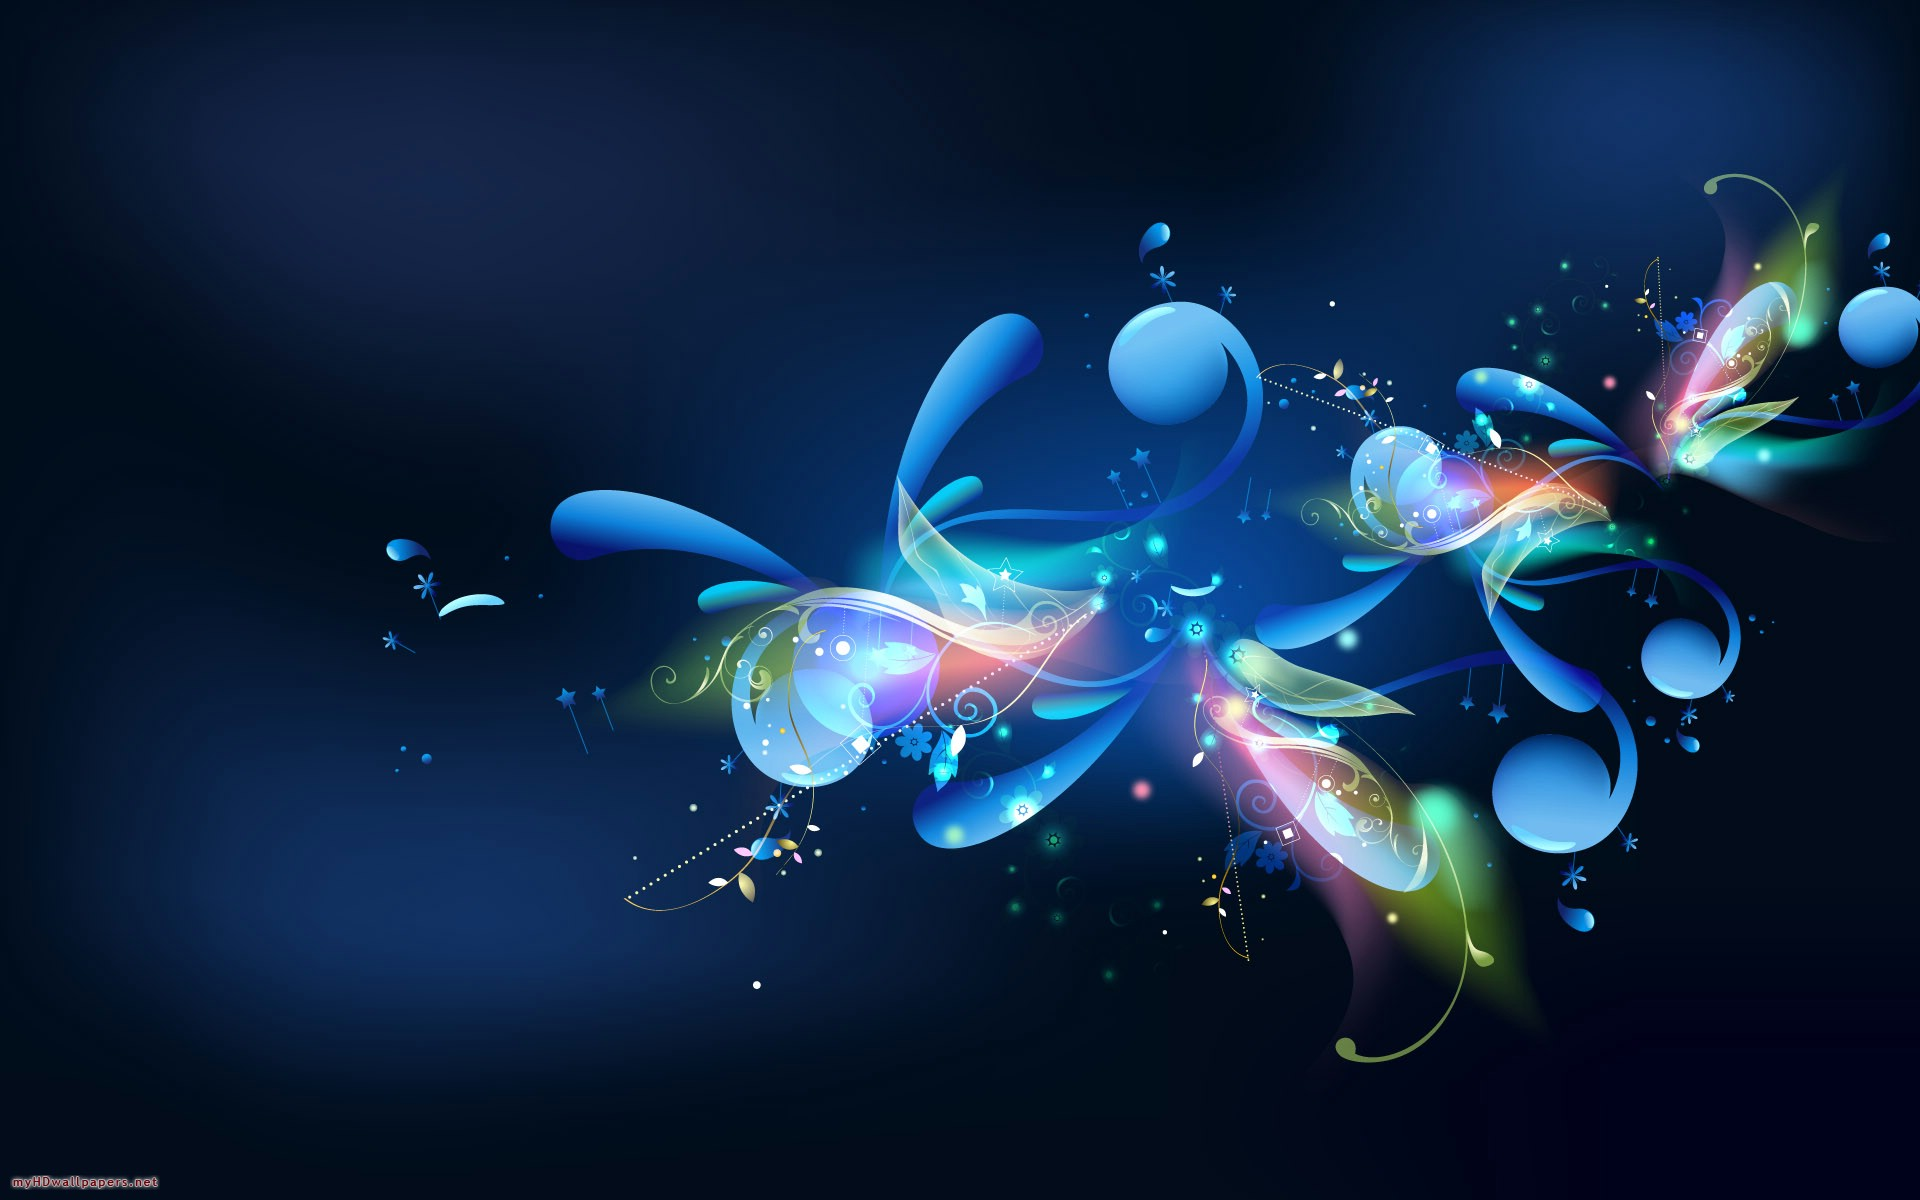 72 beautiful wallpapers hd for desktop Pictures